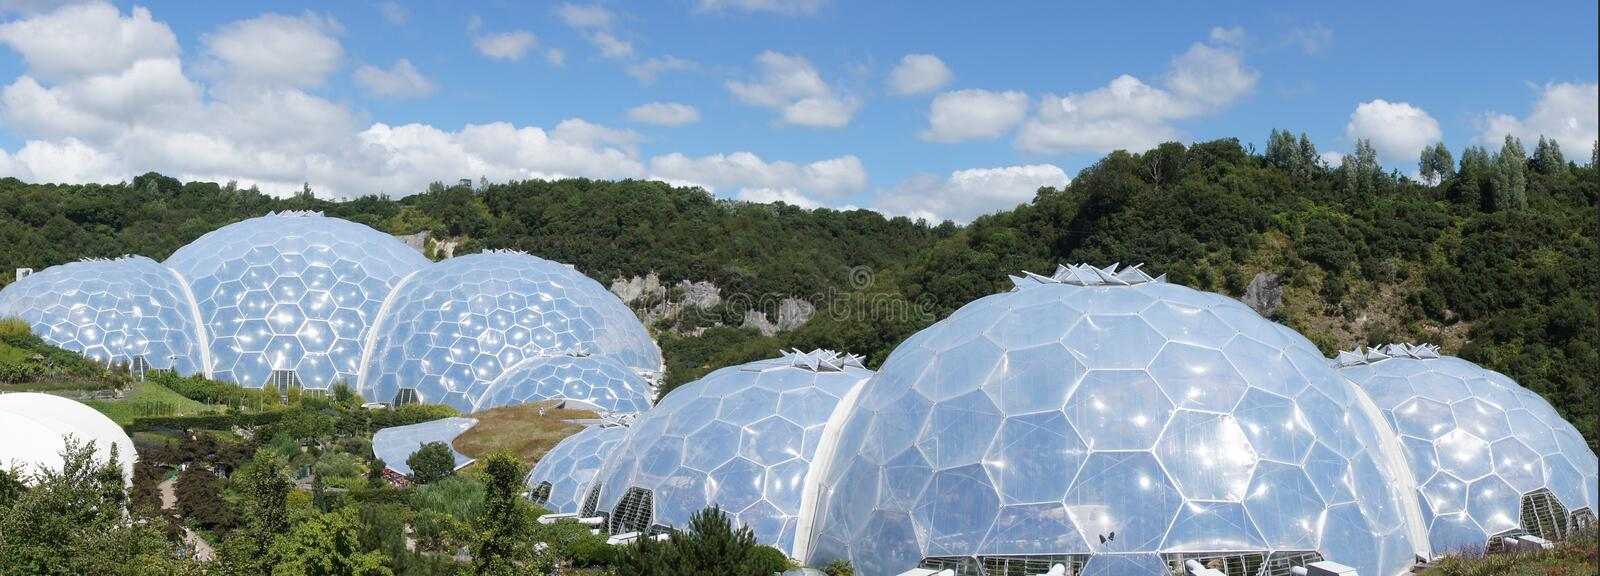 Eden Project biomes i St Austell Cornwall royaltyfria foton